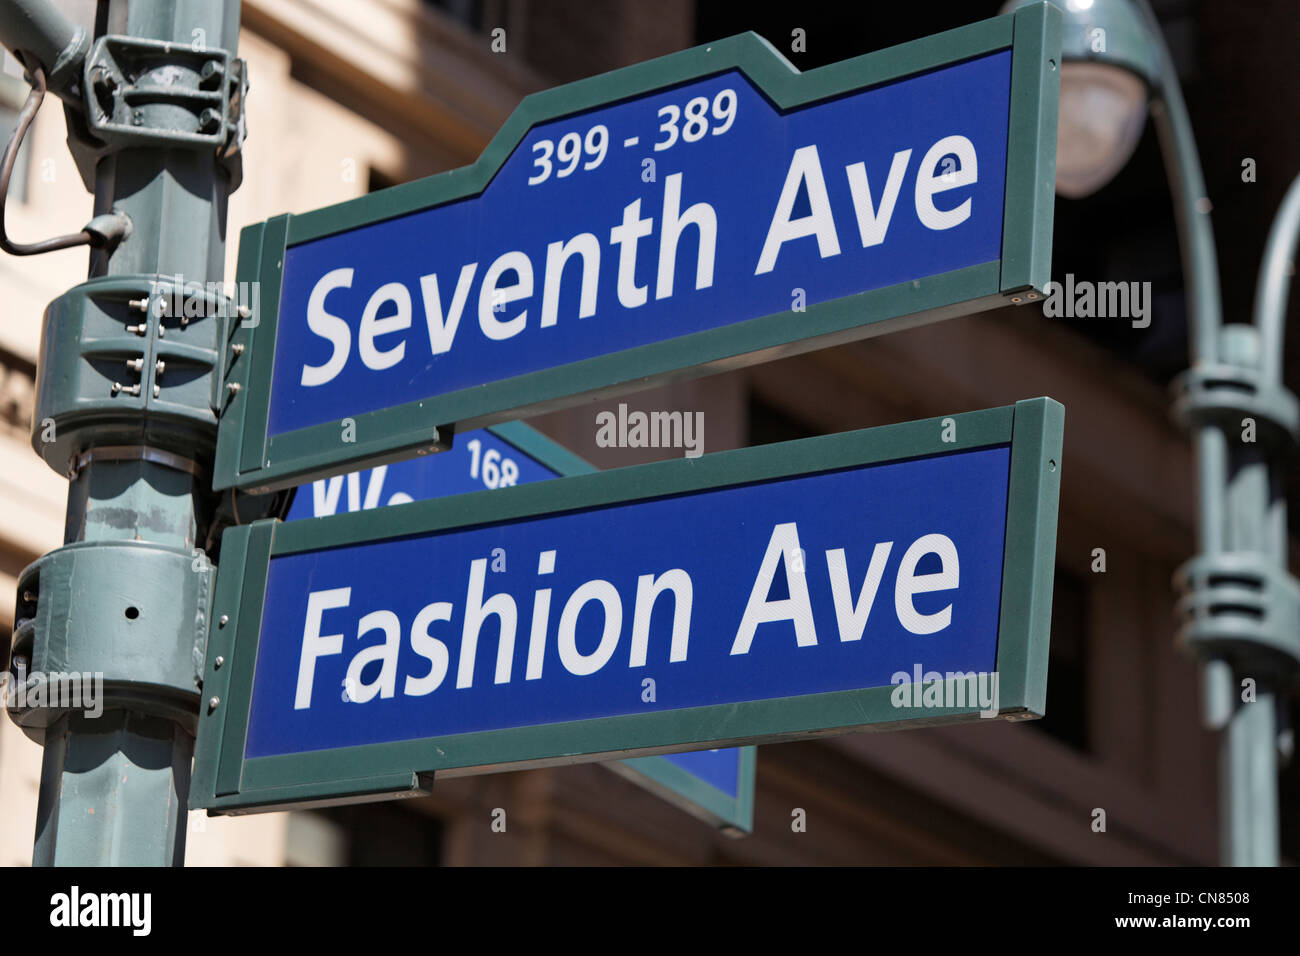 United States, New York City, Manhattan, 7th Avenue indication sign - Stock Image